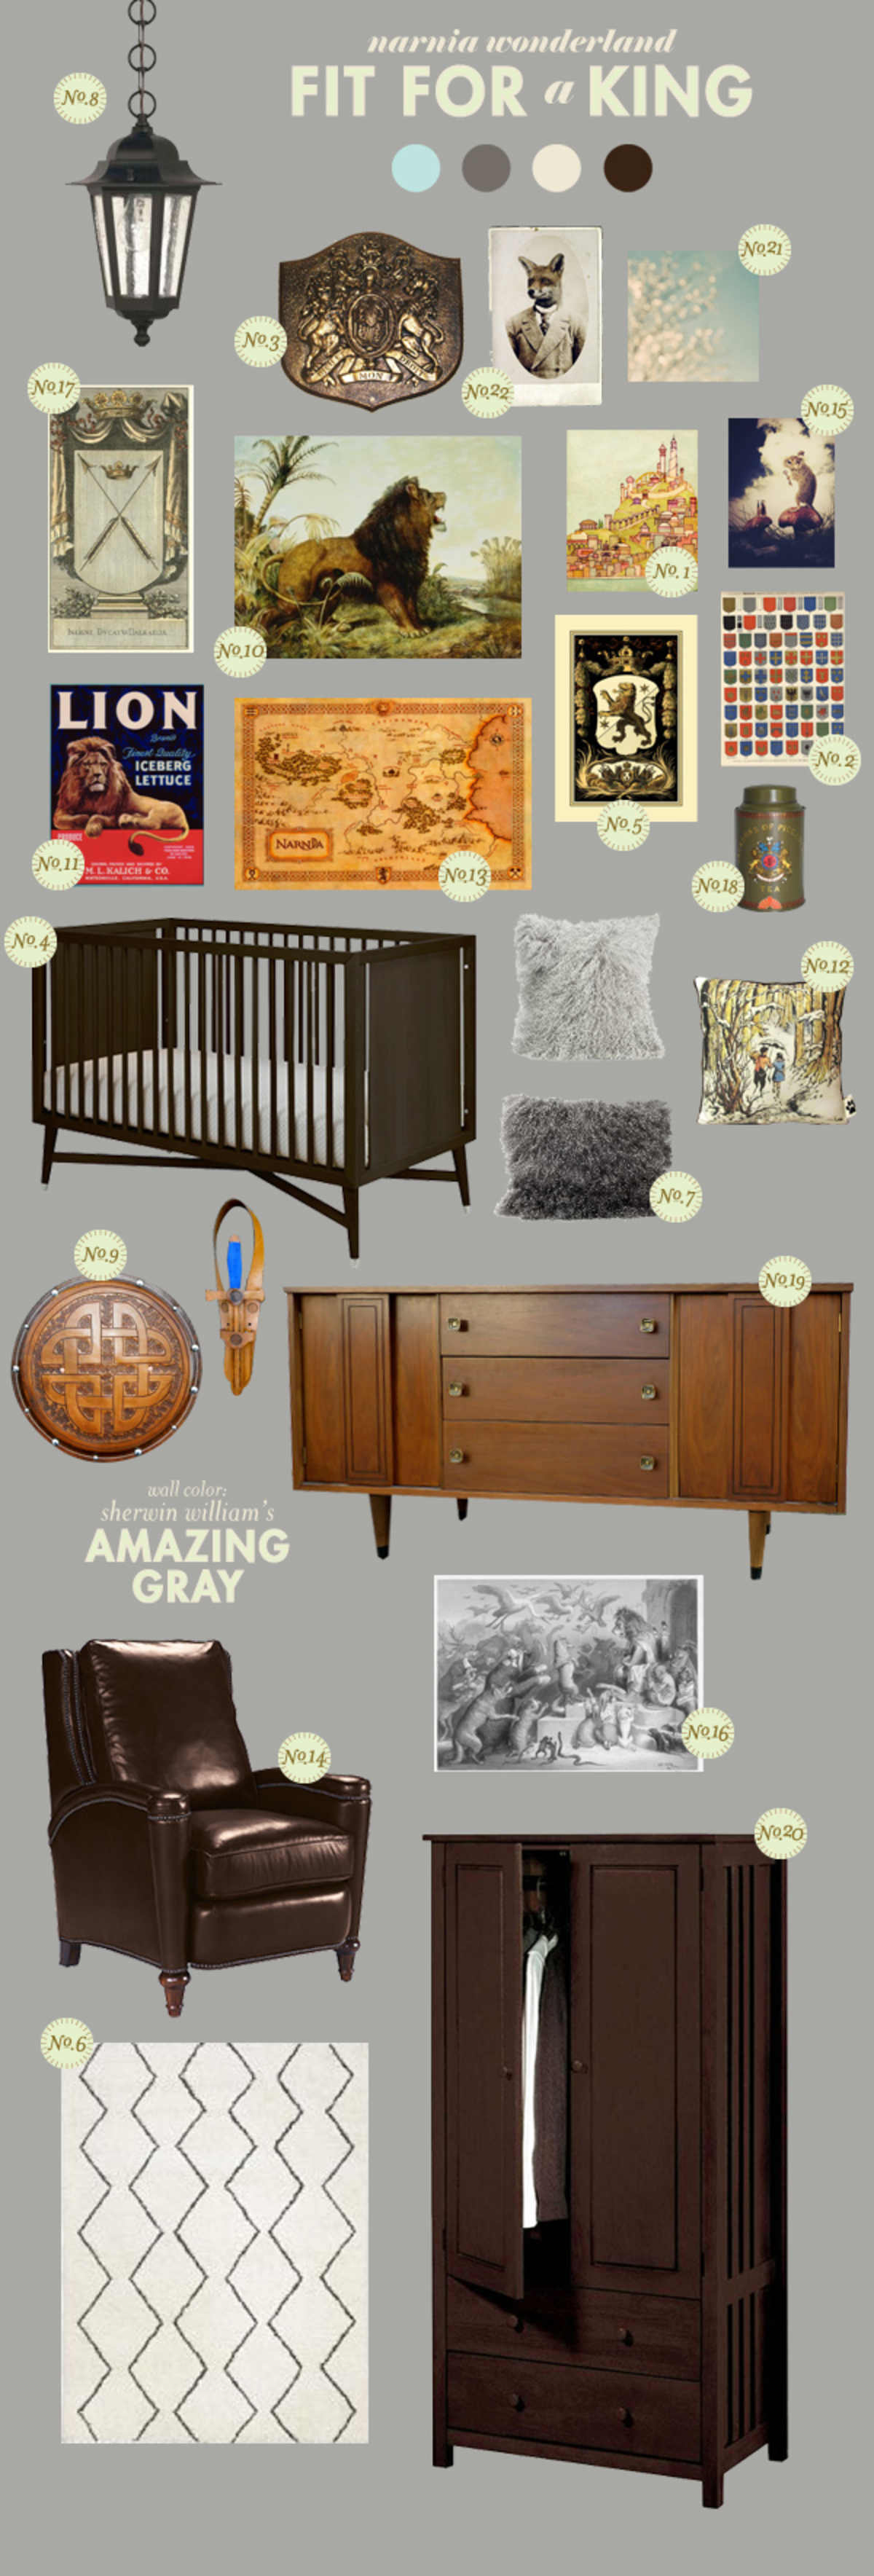 lion the witch and the wardrobe baby room ideas